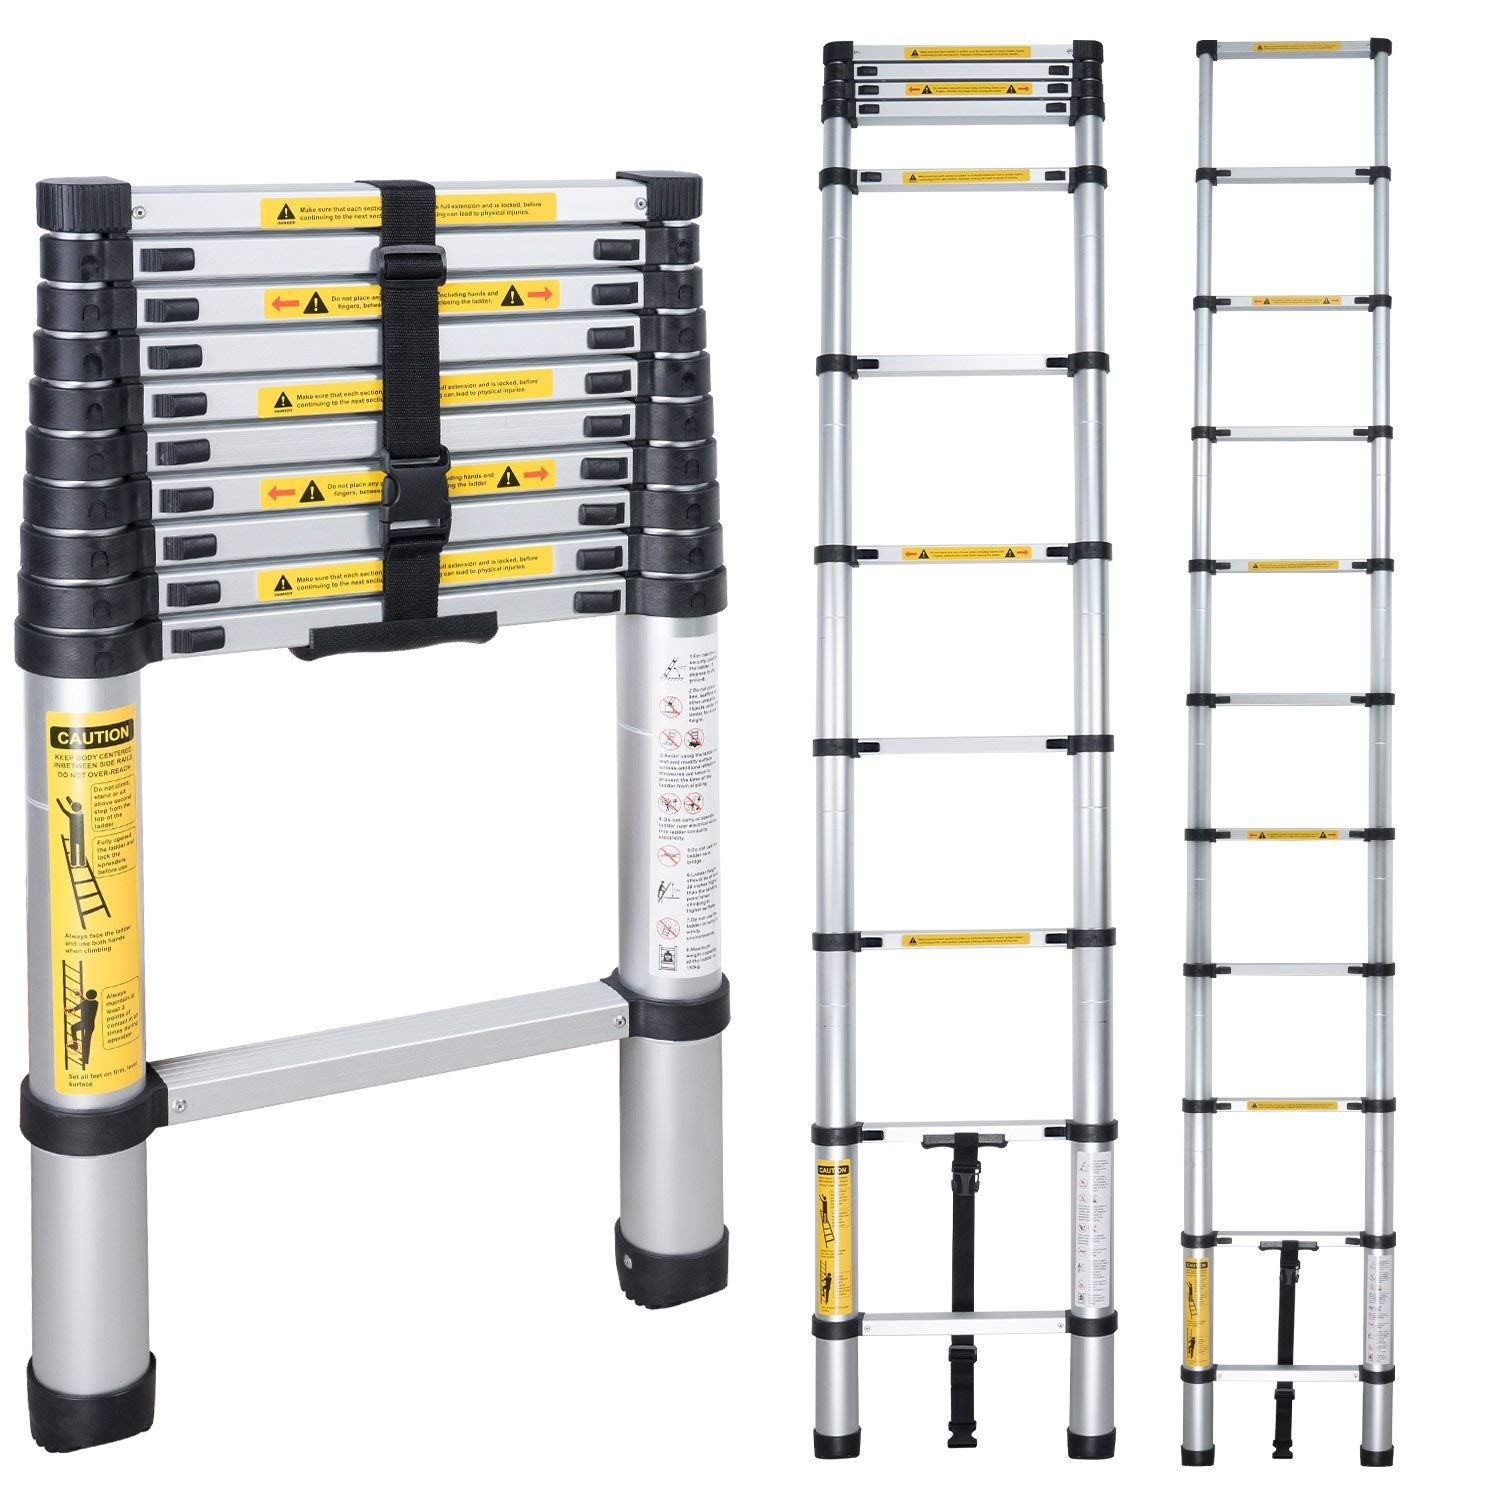 EN131 10.5ft3.2mTelescoping Ladder Folding Ladders Aluminum Multi Purpose Household Thickening Extension Ladder